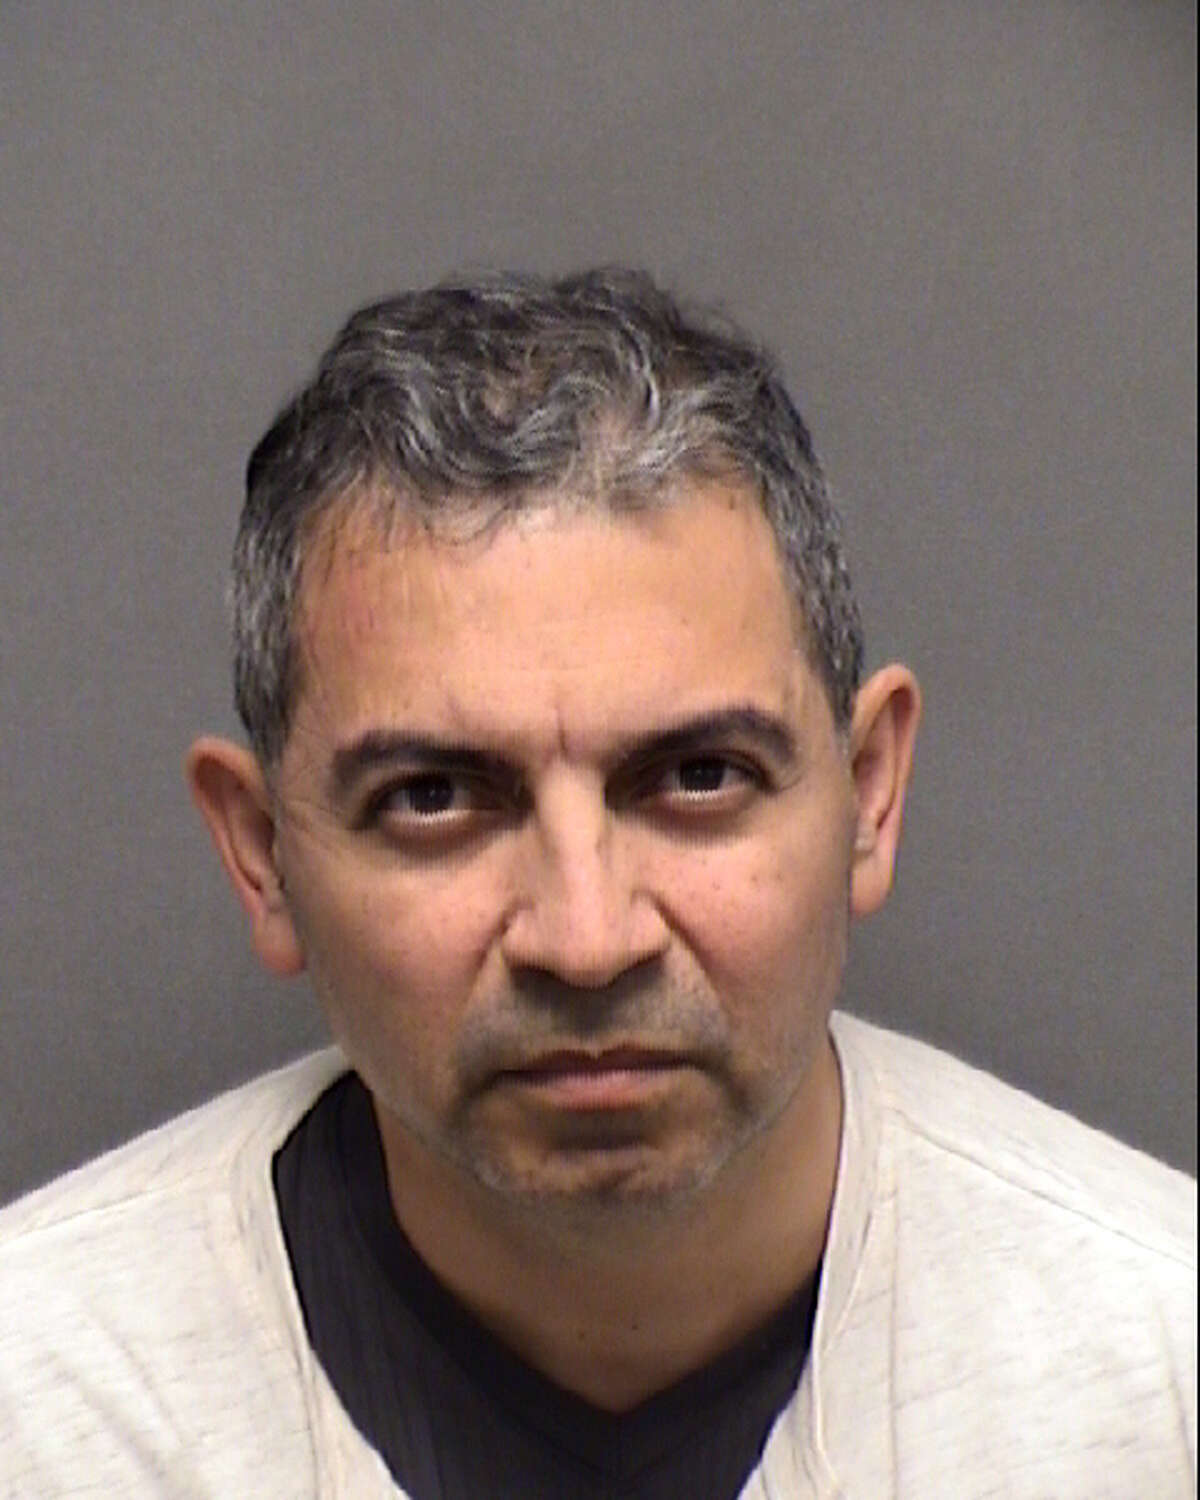 Enrique Gonzalez , 48, of Rancho Cucamonga, reportedly masturbated on a United Airlines flight on Feb. 3 while his wife tried to help him, according to court and police records.